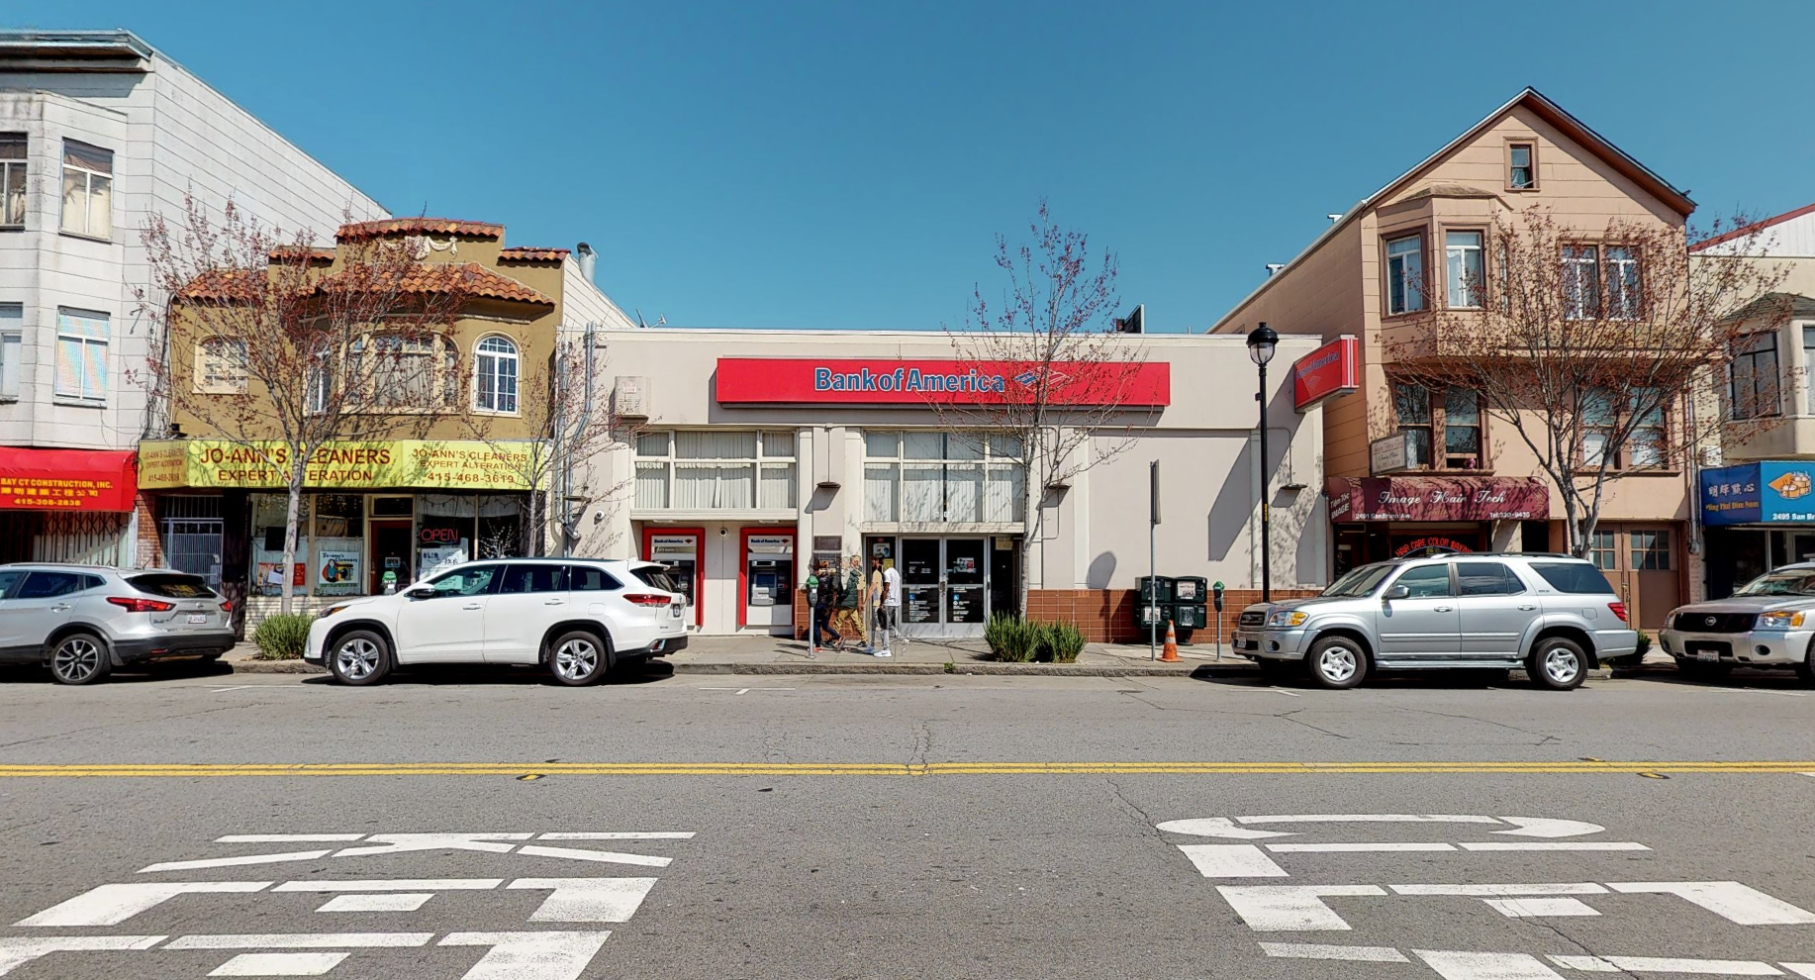 Bank of America financial center with walk-up ATM   2485 San Bruno Ave, San Francisco, CA 94134